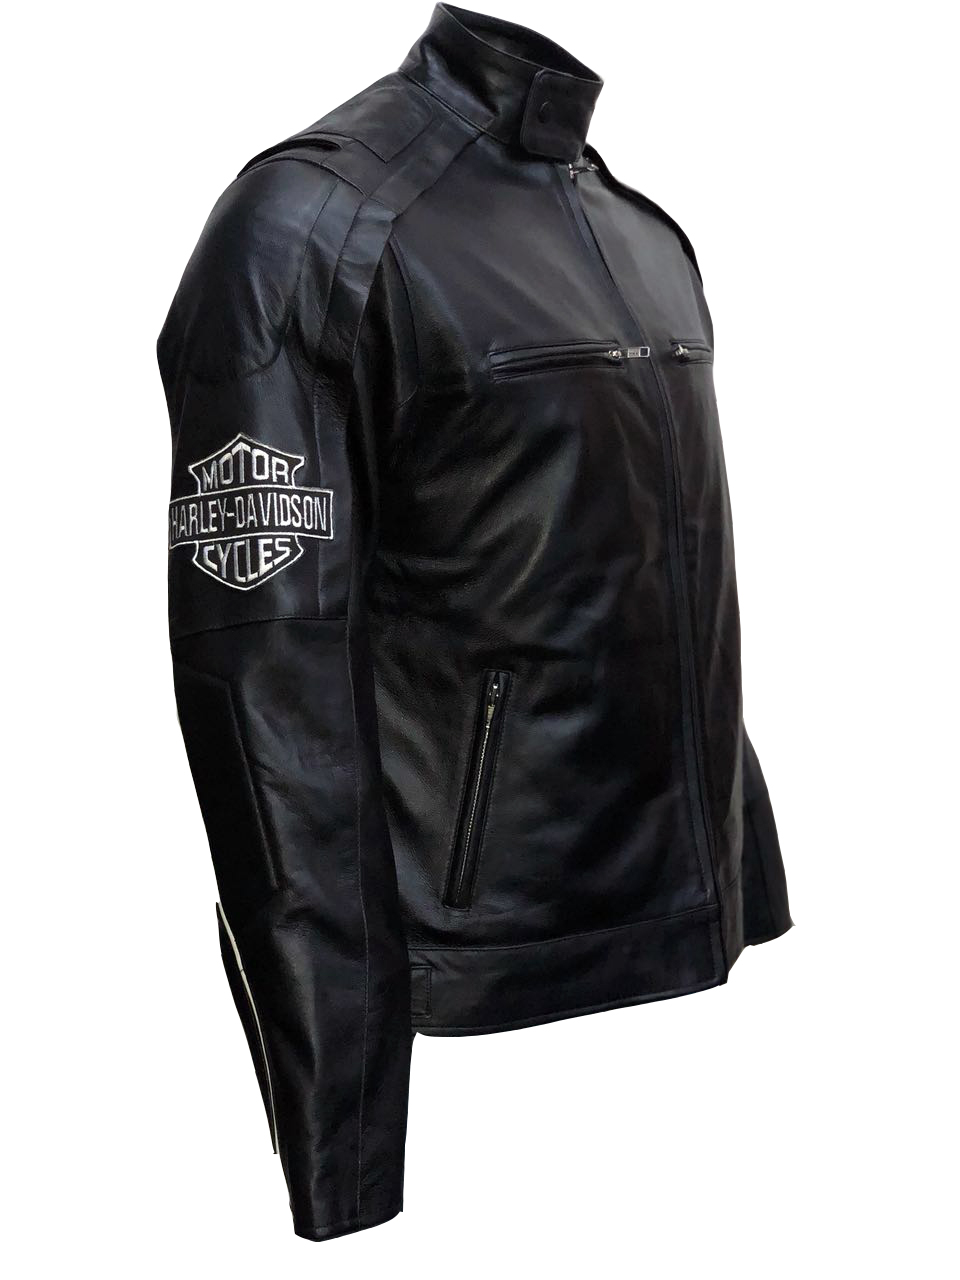 New Harley Davidson Leather (3)